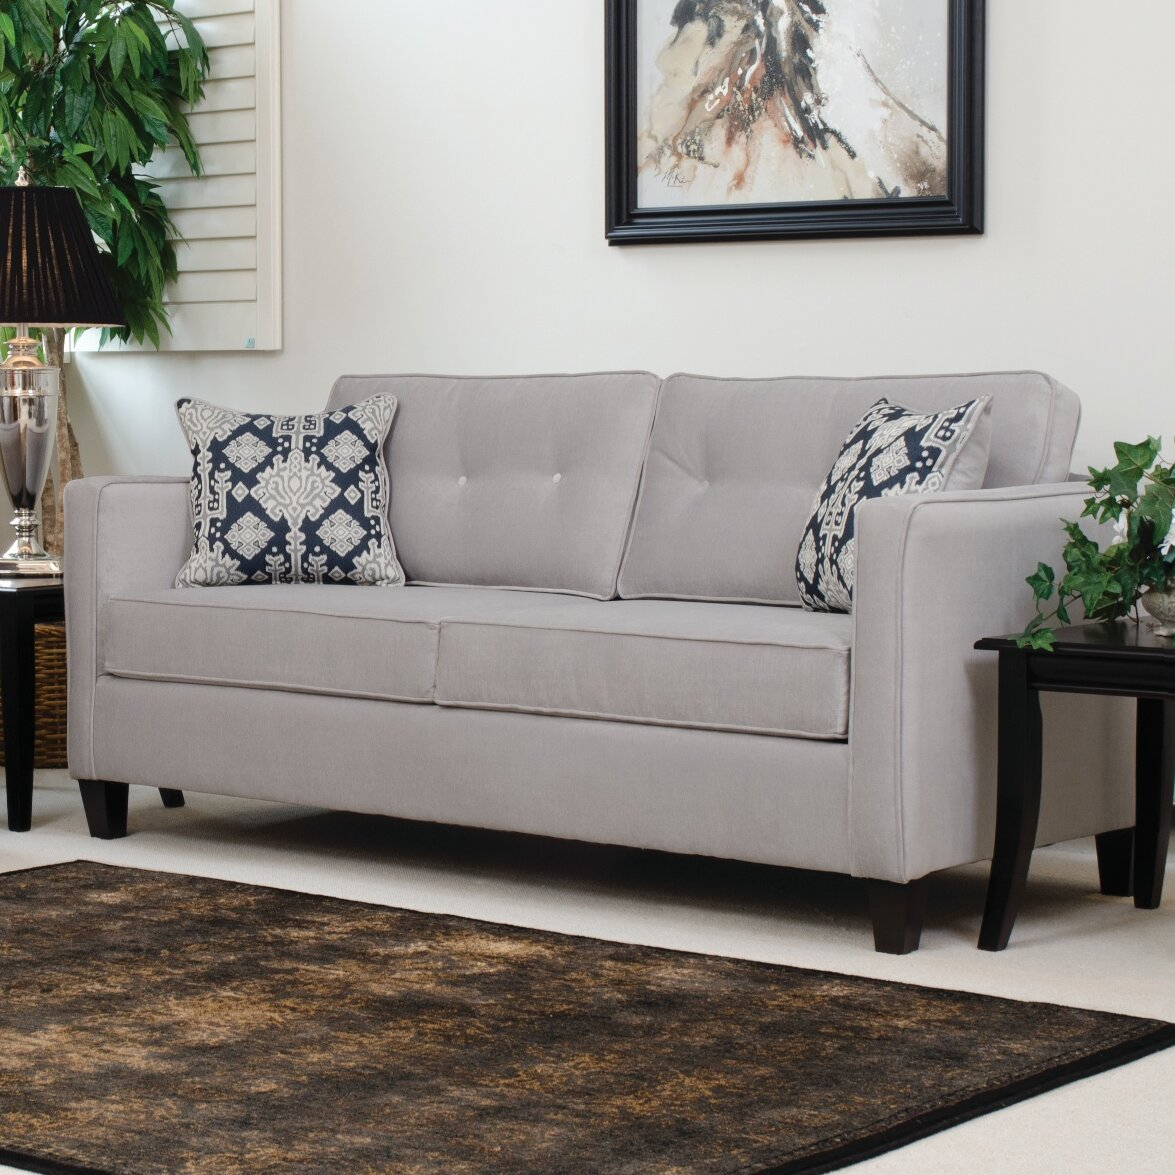 serta upholstery elizabeth queen sleeper sofa ebay. Black Bedroom Furniture Sets. Home Design Ideas